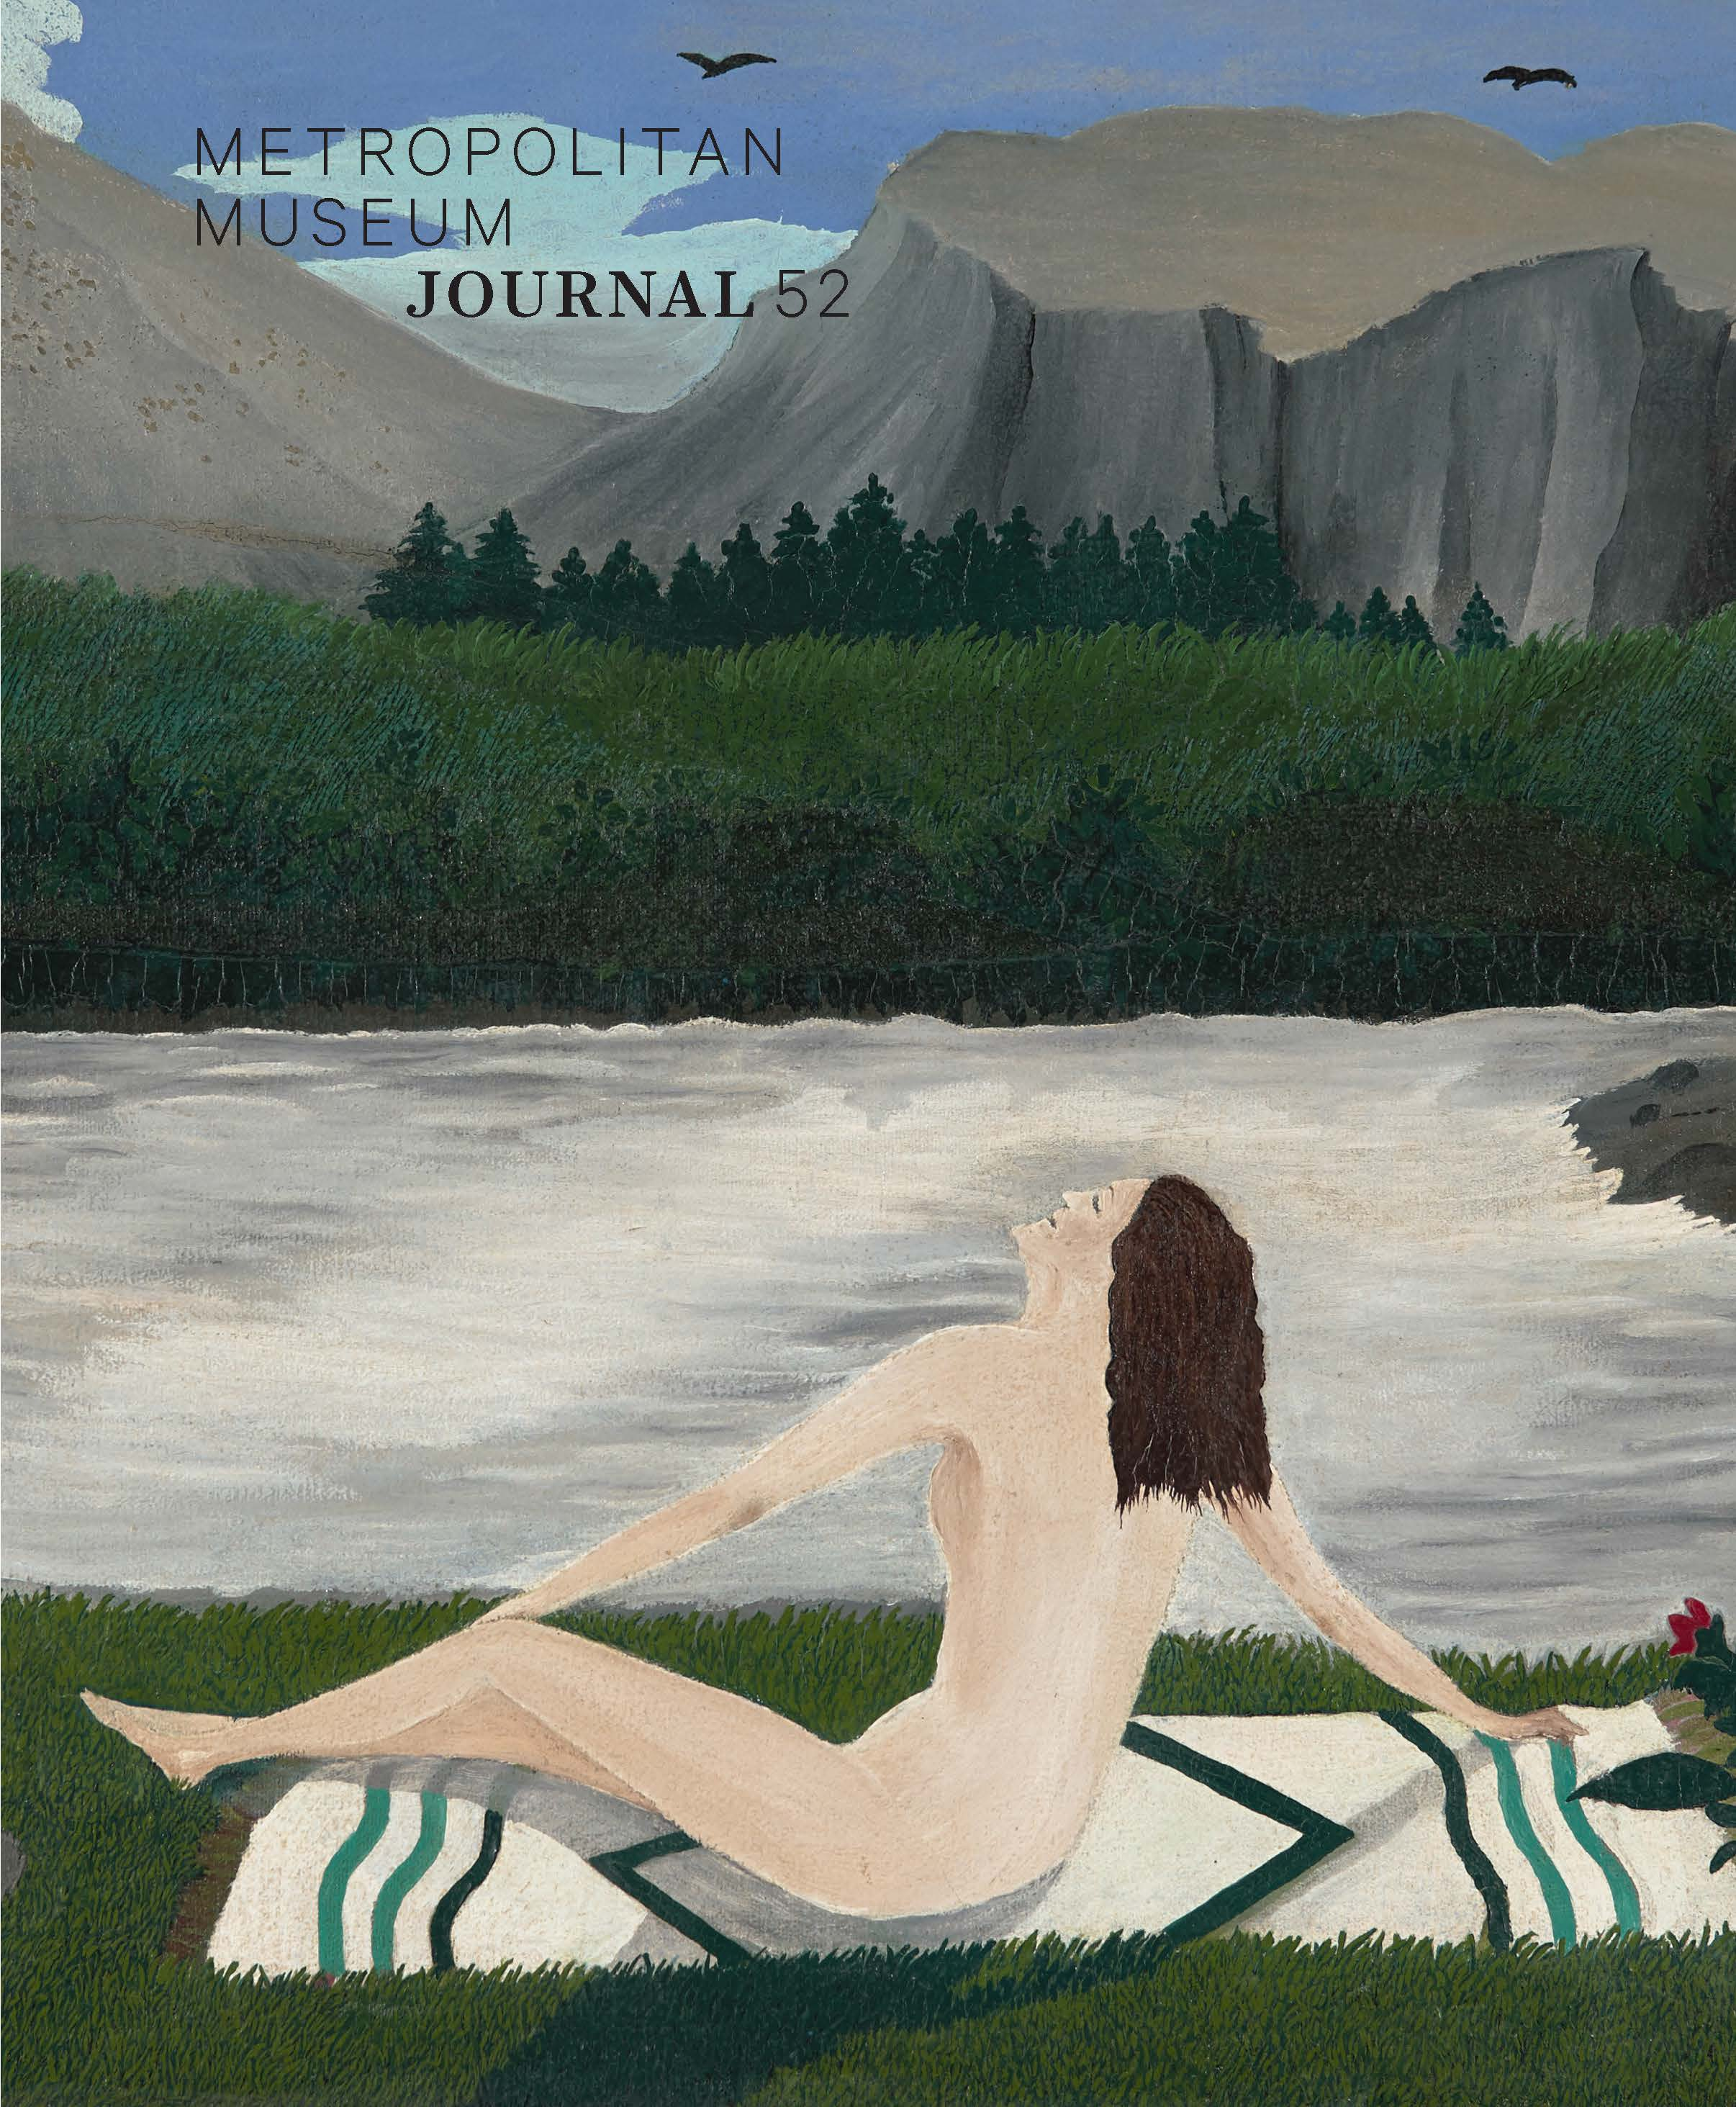 Metropolitan Museum Journal, Volume 52, 2017